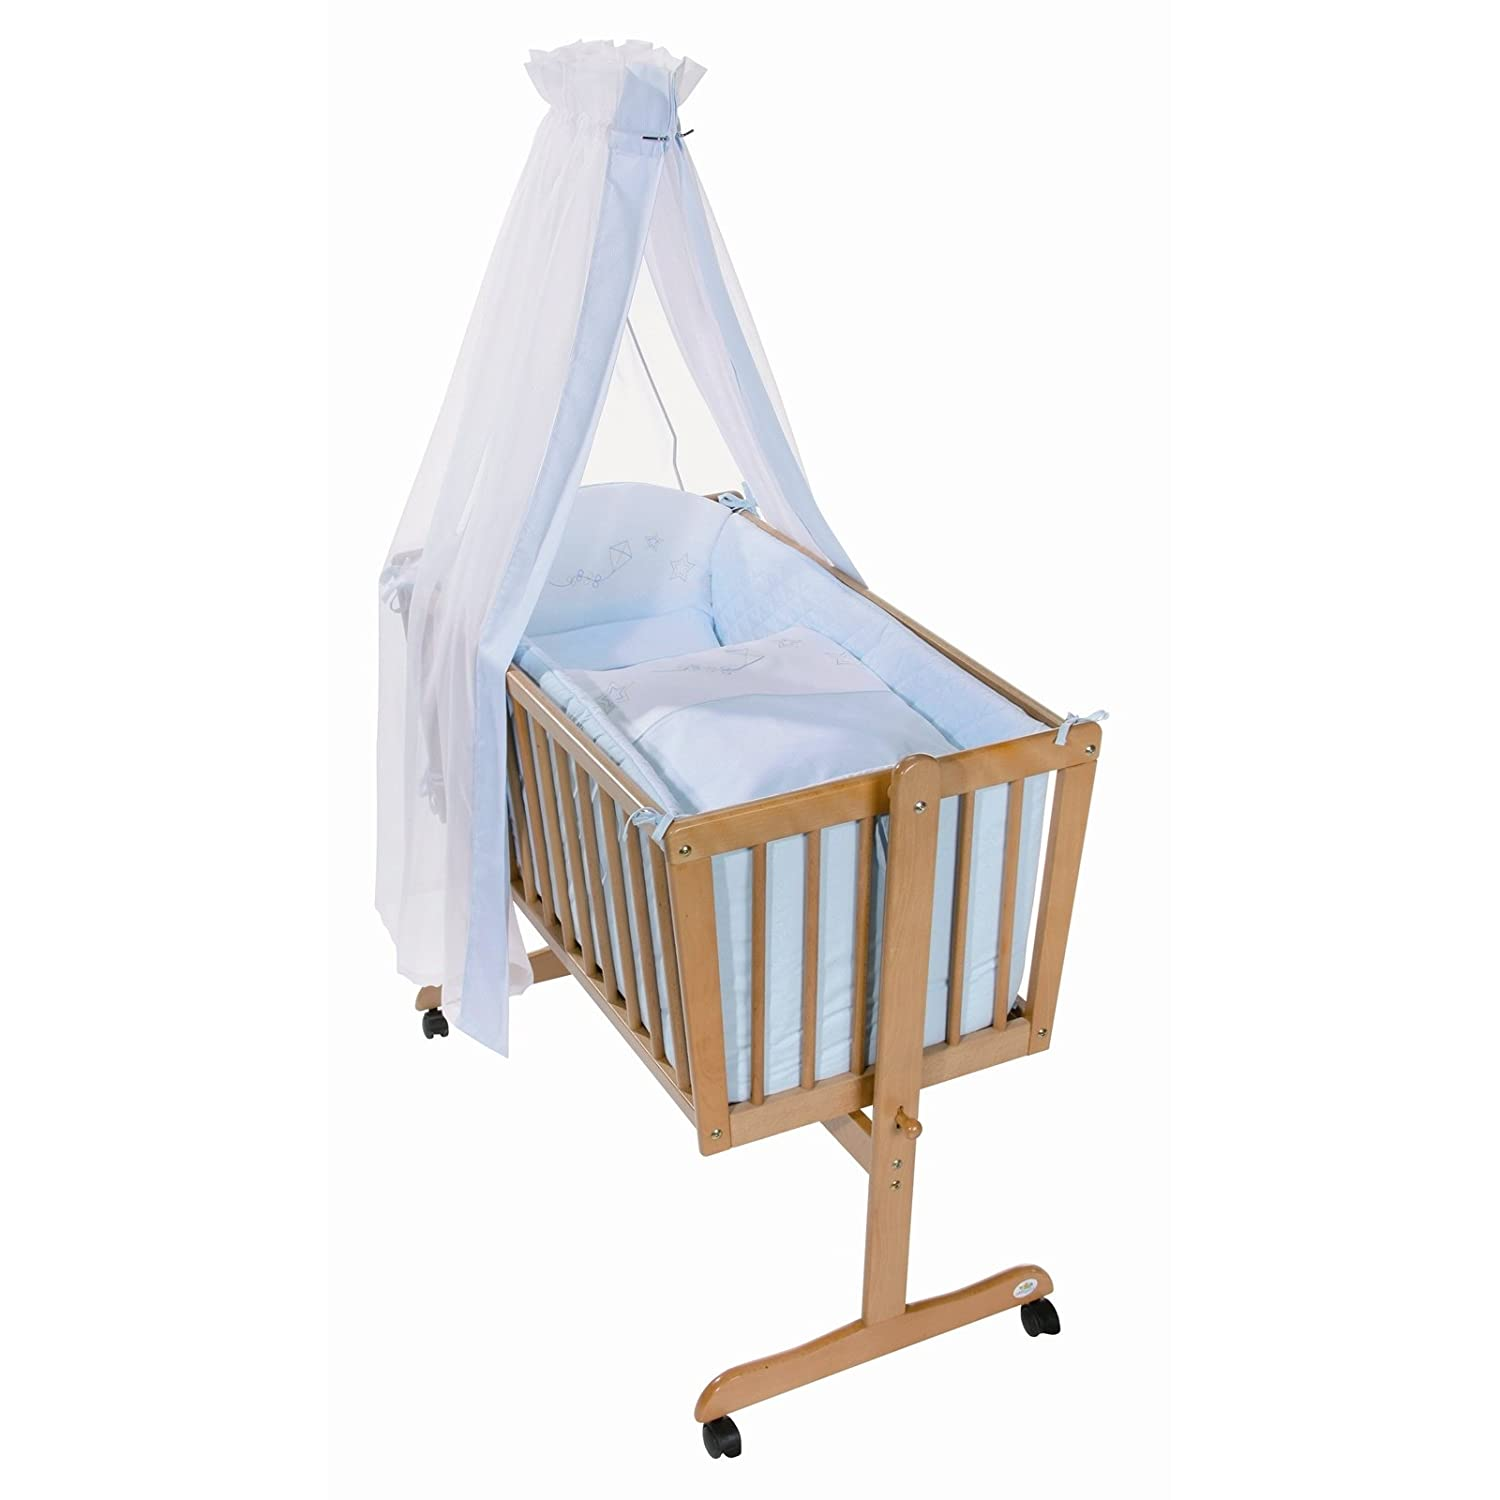 Easy Baby Wiege Komplettset natur, Cometa blue 181-56